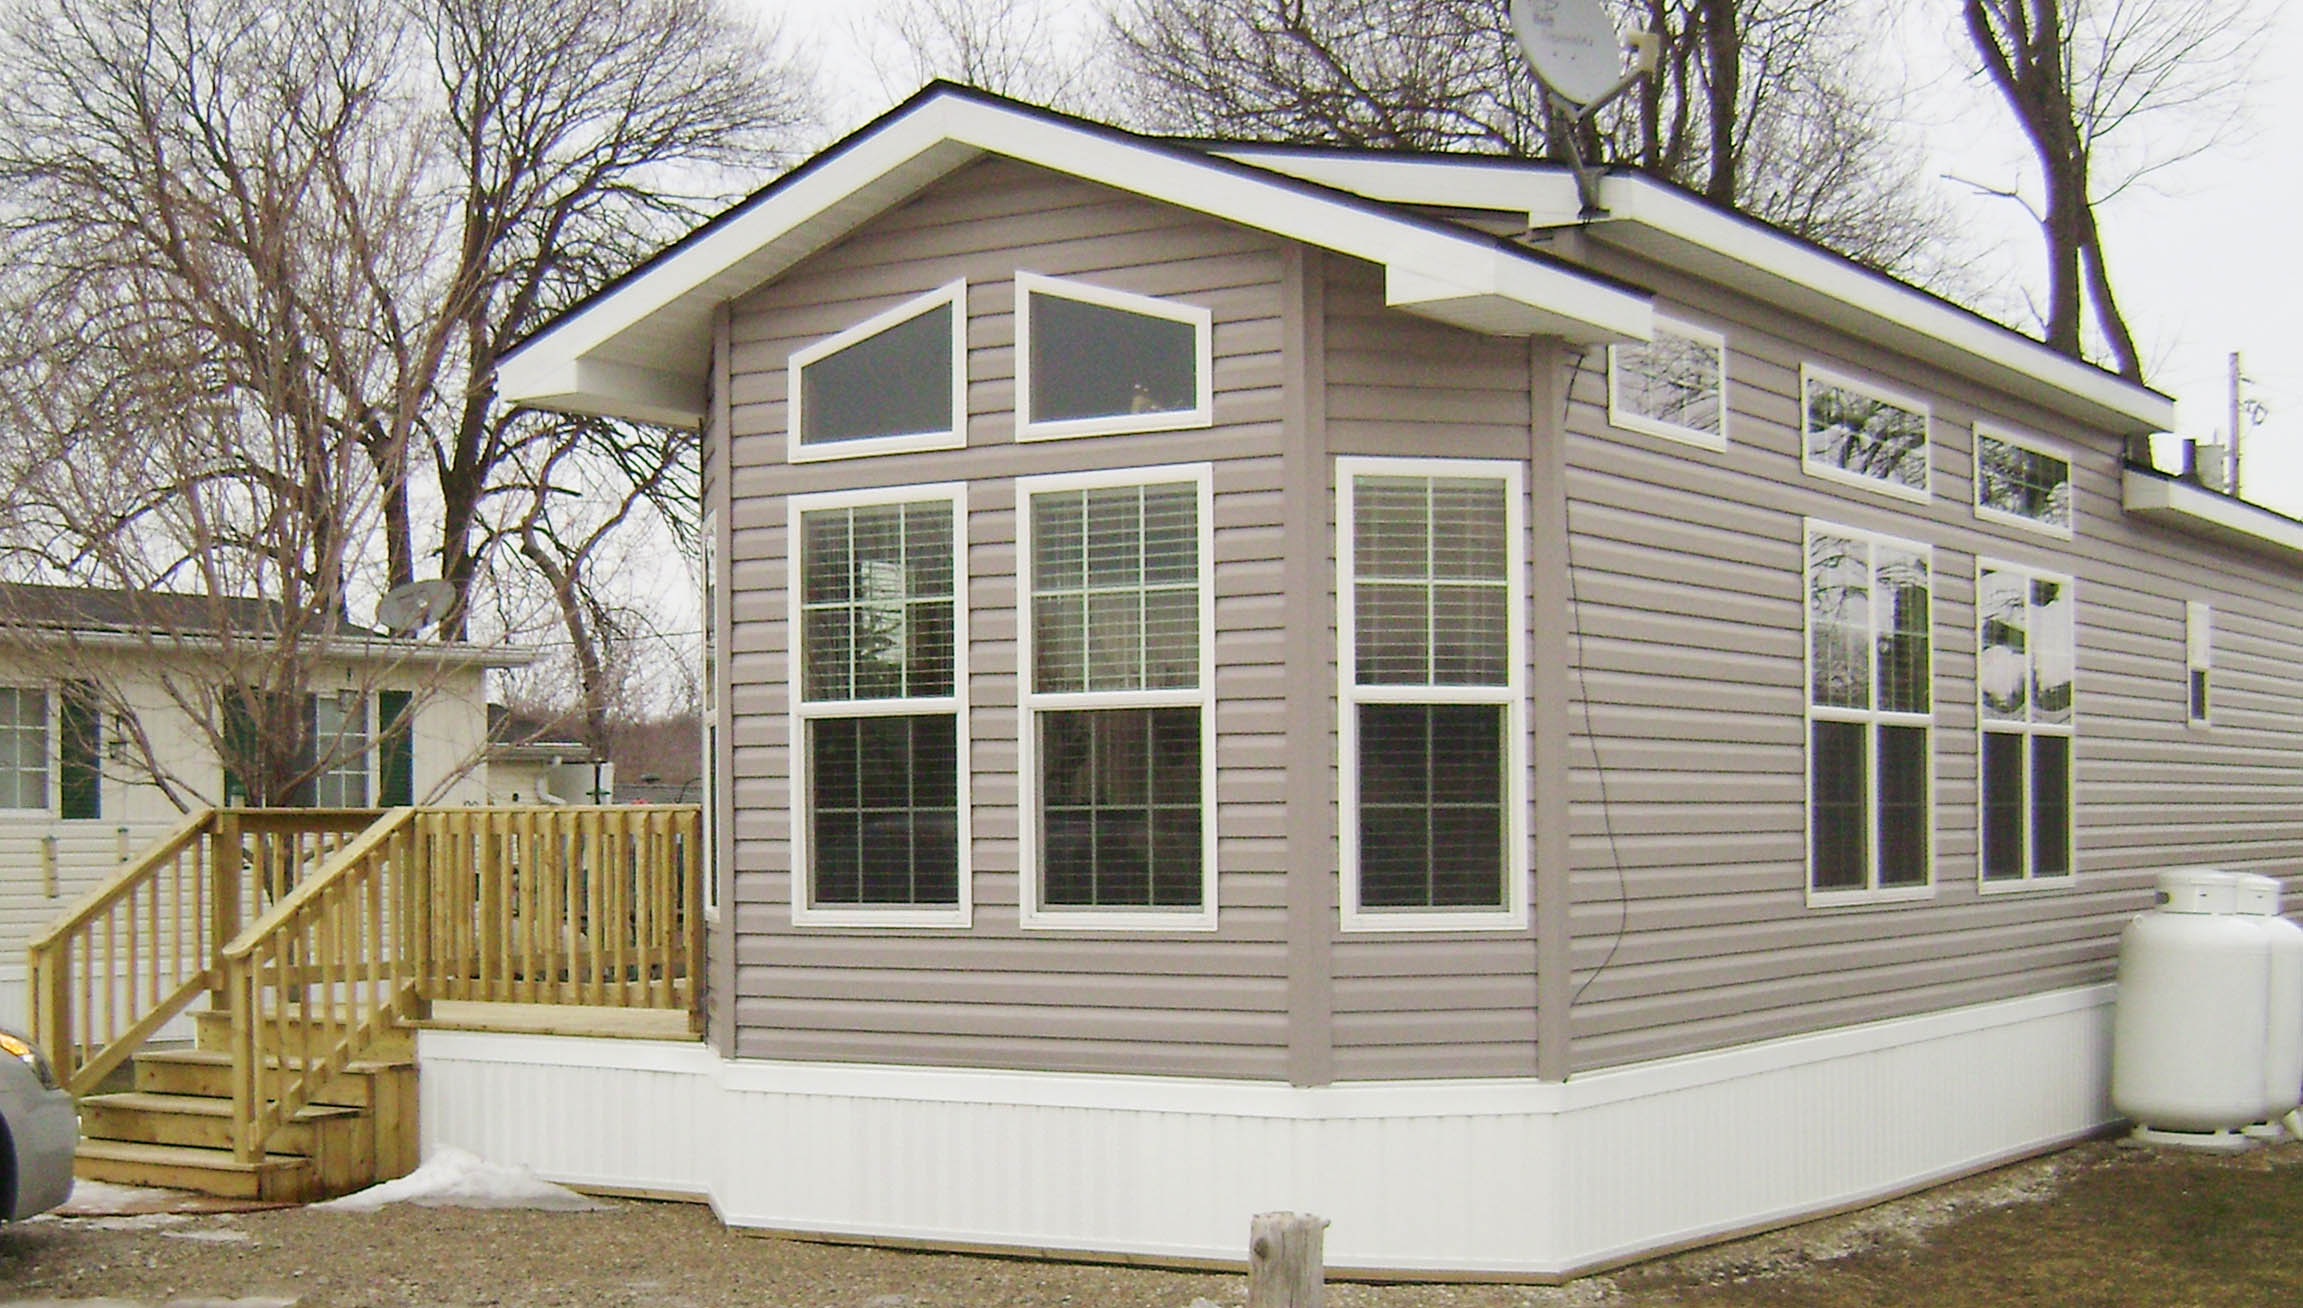 3 bedroom houses for rent private landlord Cheap Homes For Rent By Owner Houses for rent near me under 500 Mobile Homes For Rent Near Me Under 500 A Month Houses for rent near me under 1000 Homes For Rent Near Me Under 500 House section 8 craigslist accepted Zillow Section 8 Houses For Rent